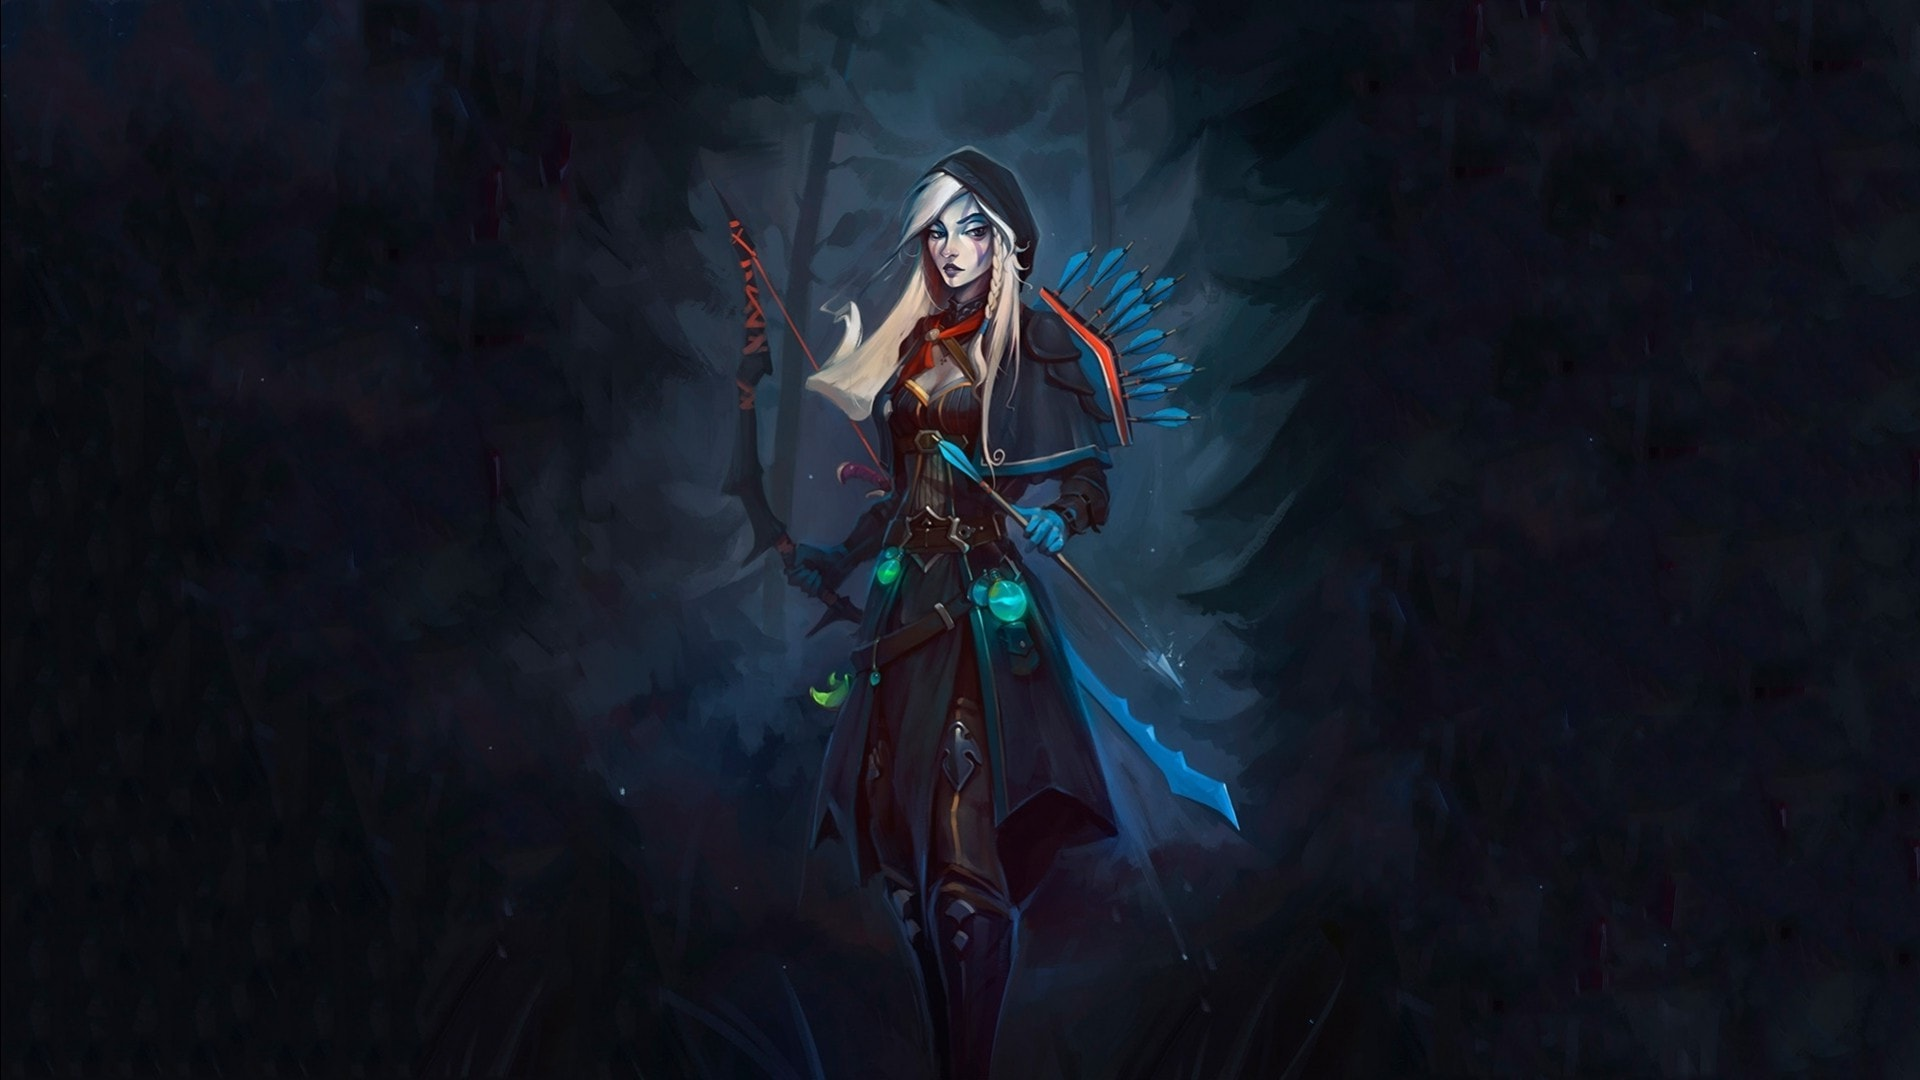 Dota2 : Drow Ranger desktop wallpaper